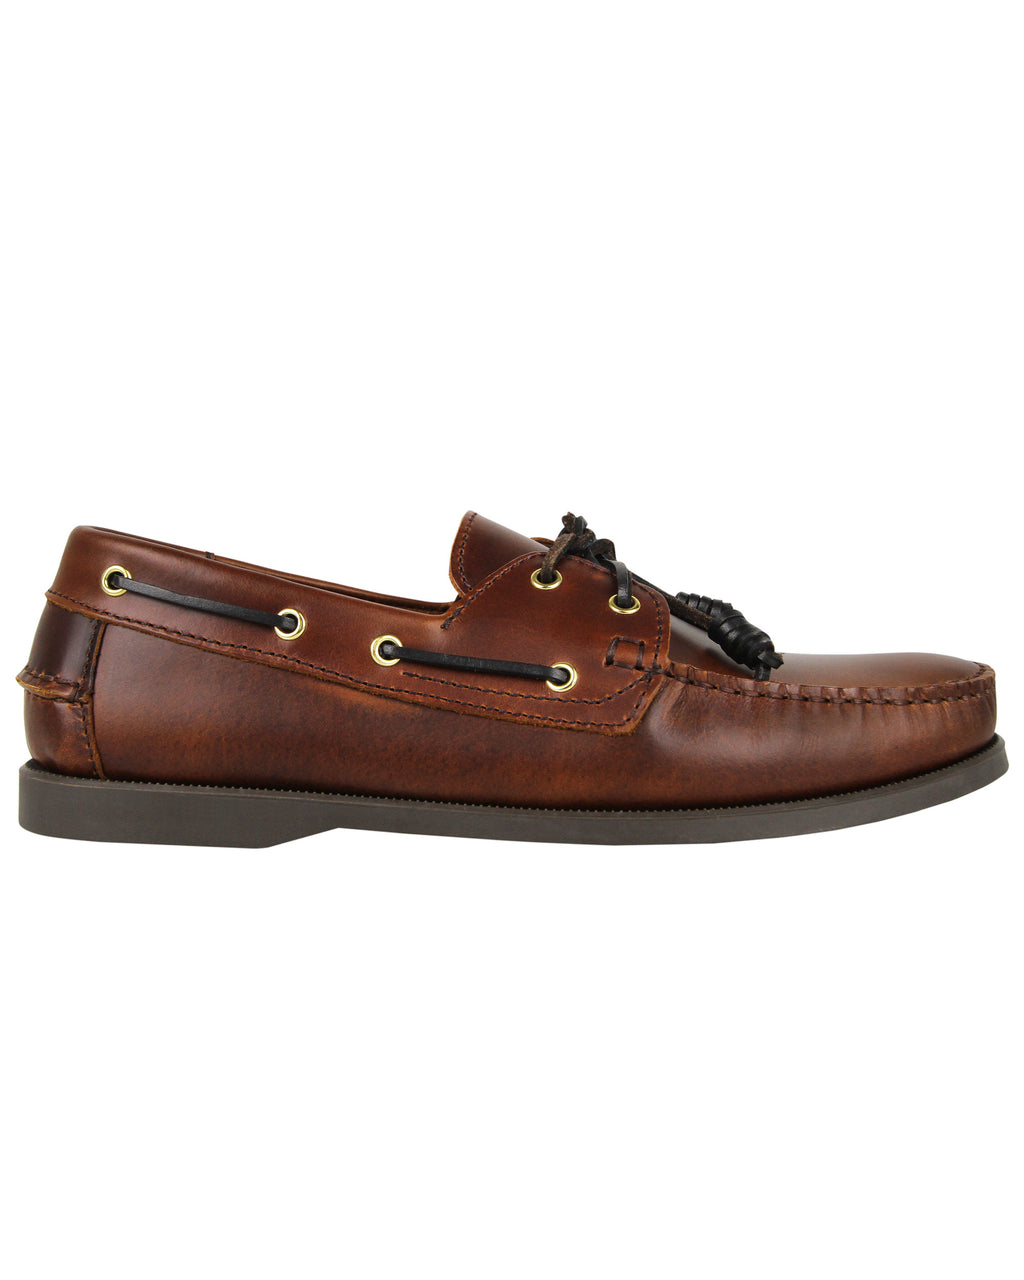 Tomaz C328-1 Leather Boat Shoes (Brown)